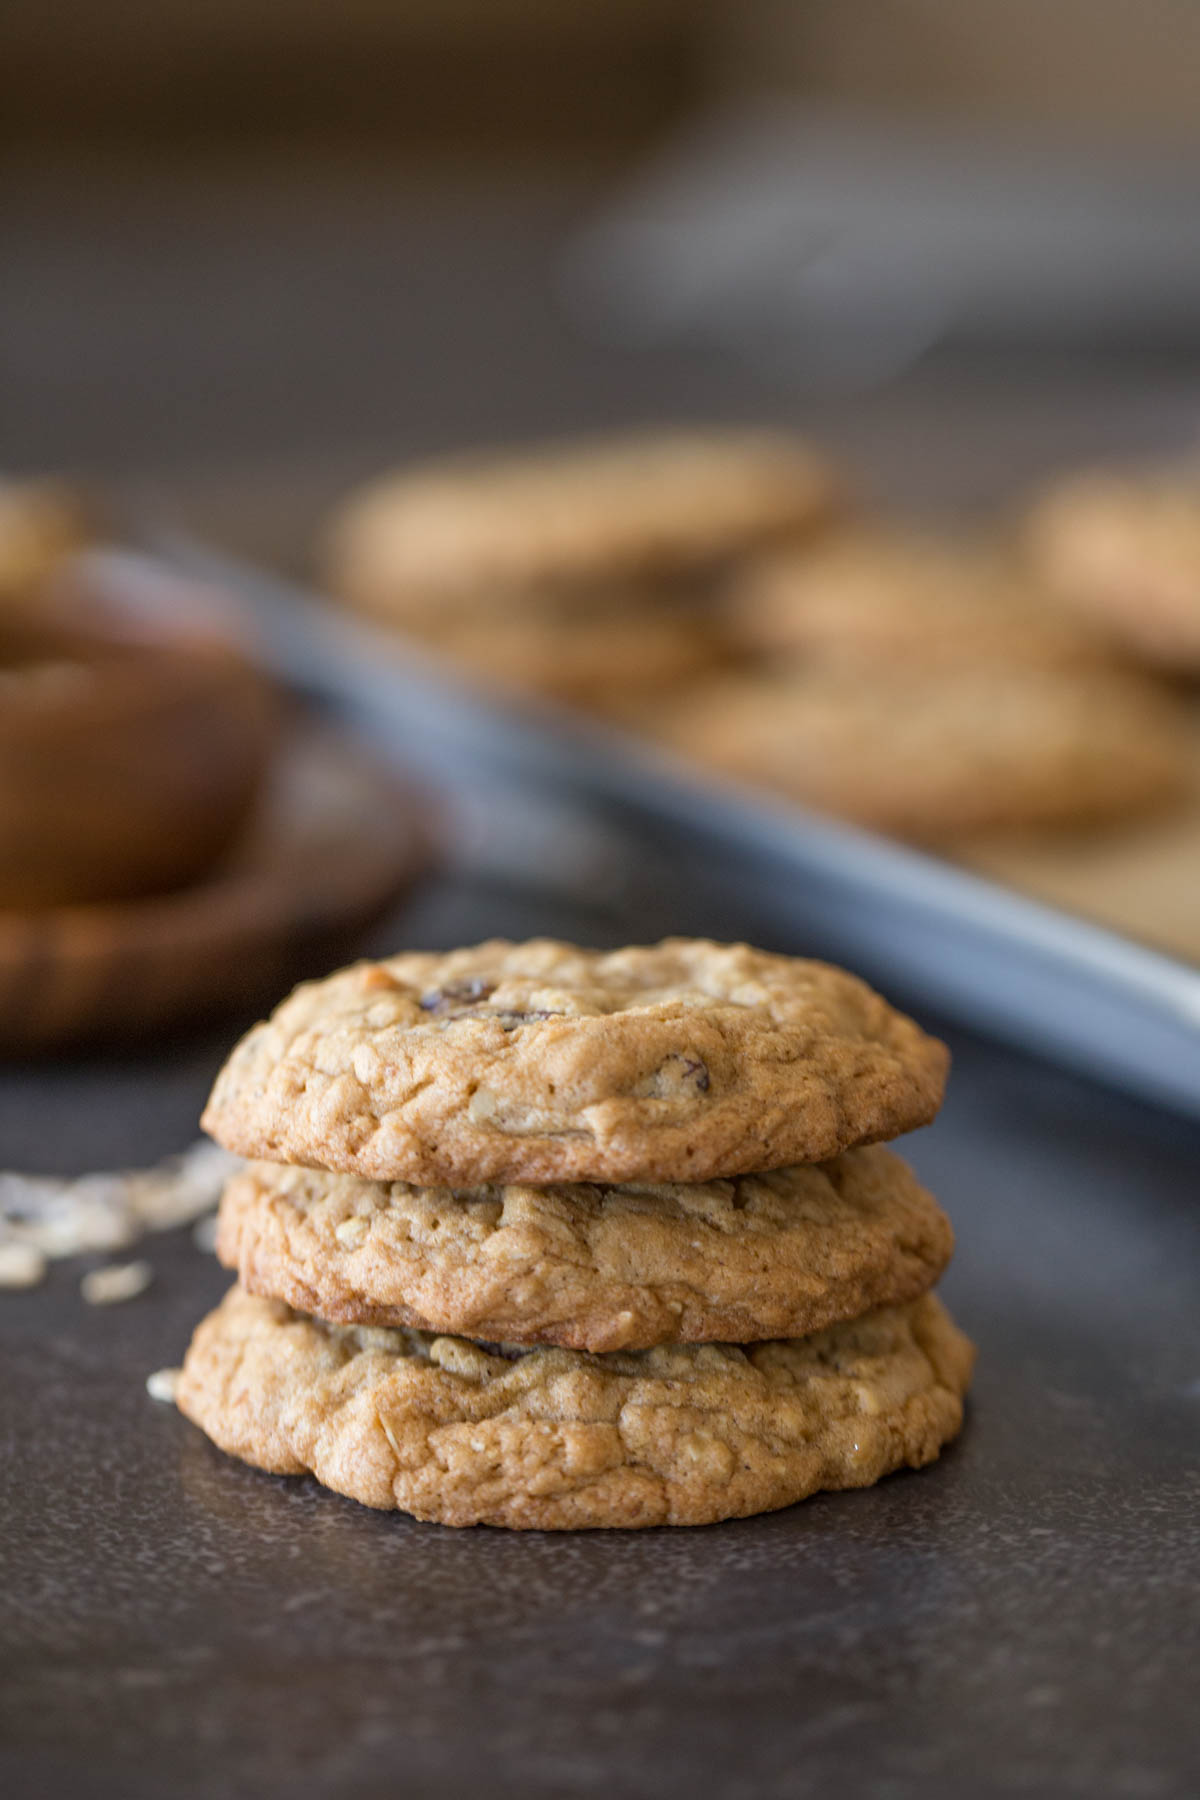 Three Bakery Style Oatmeal Raisin Cookies stacked on top of each other.